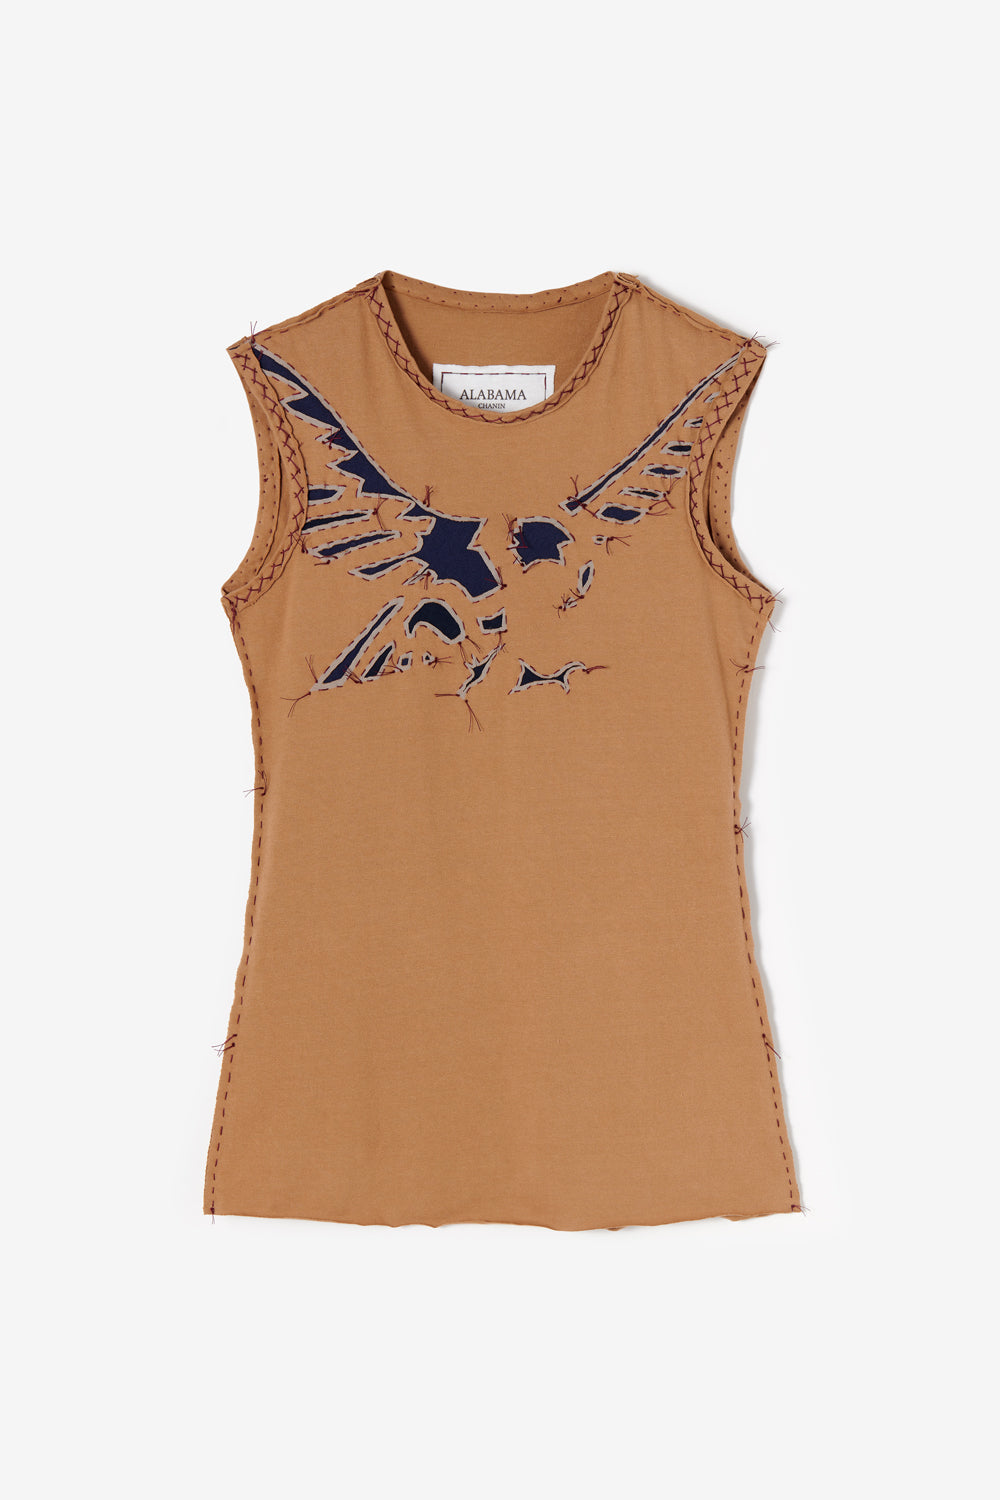 Alabama Chanin 21 Years Collection Hand Sewn Eagle Fitted Top in Camel